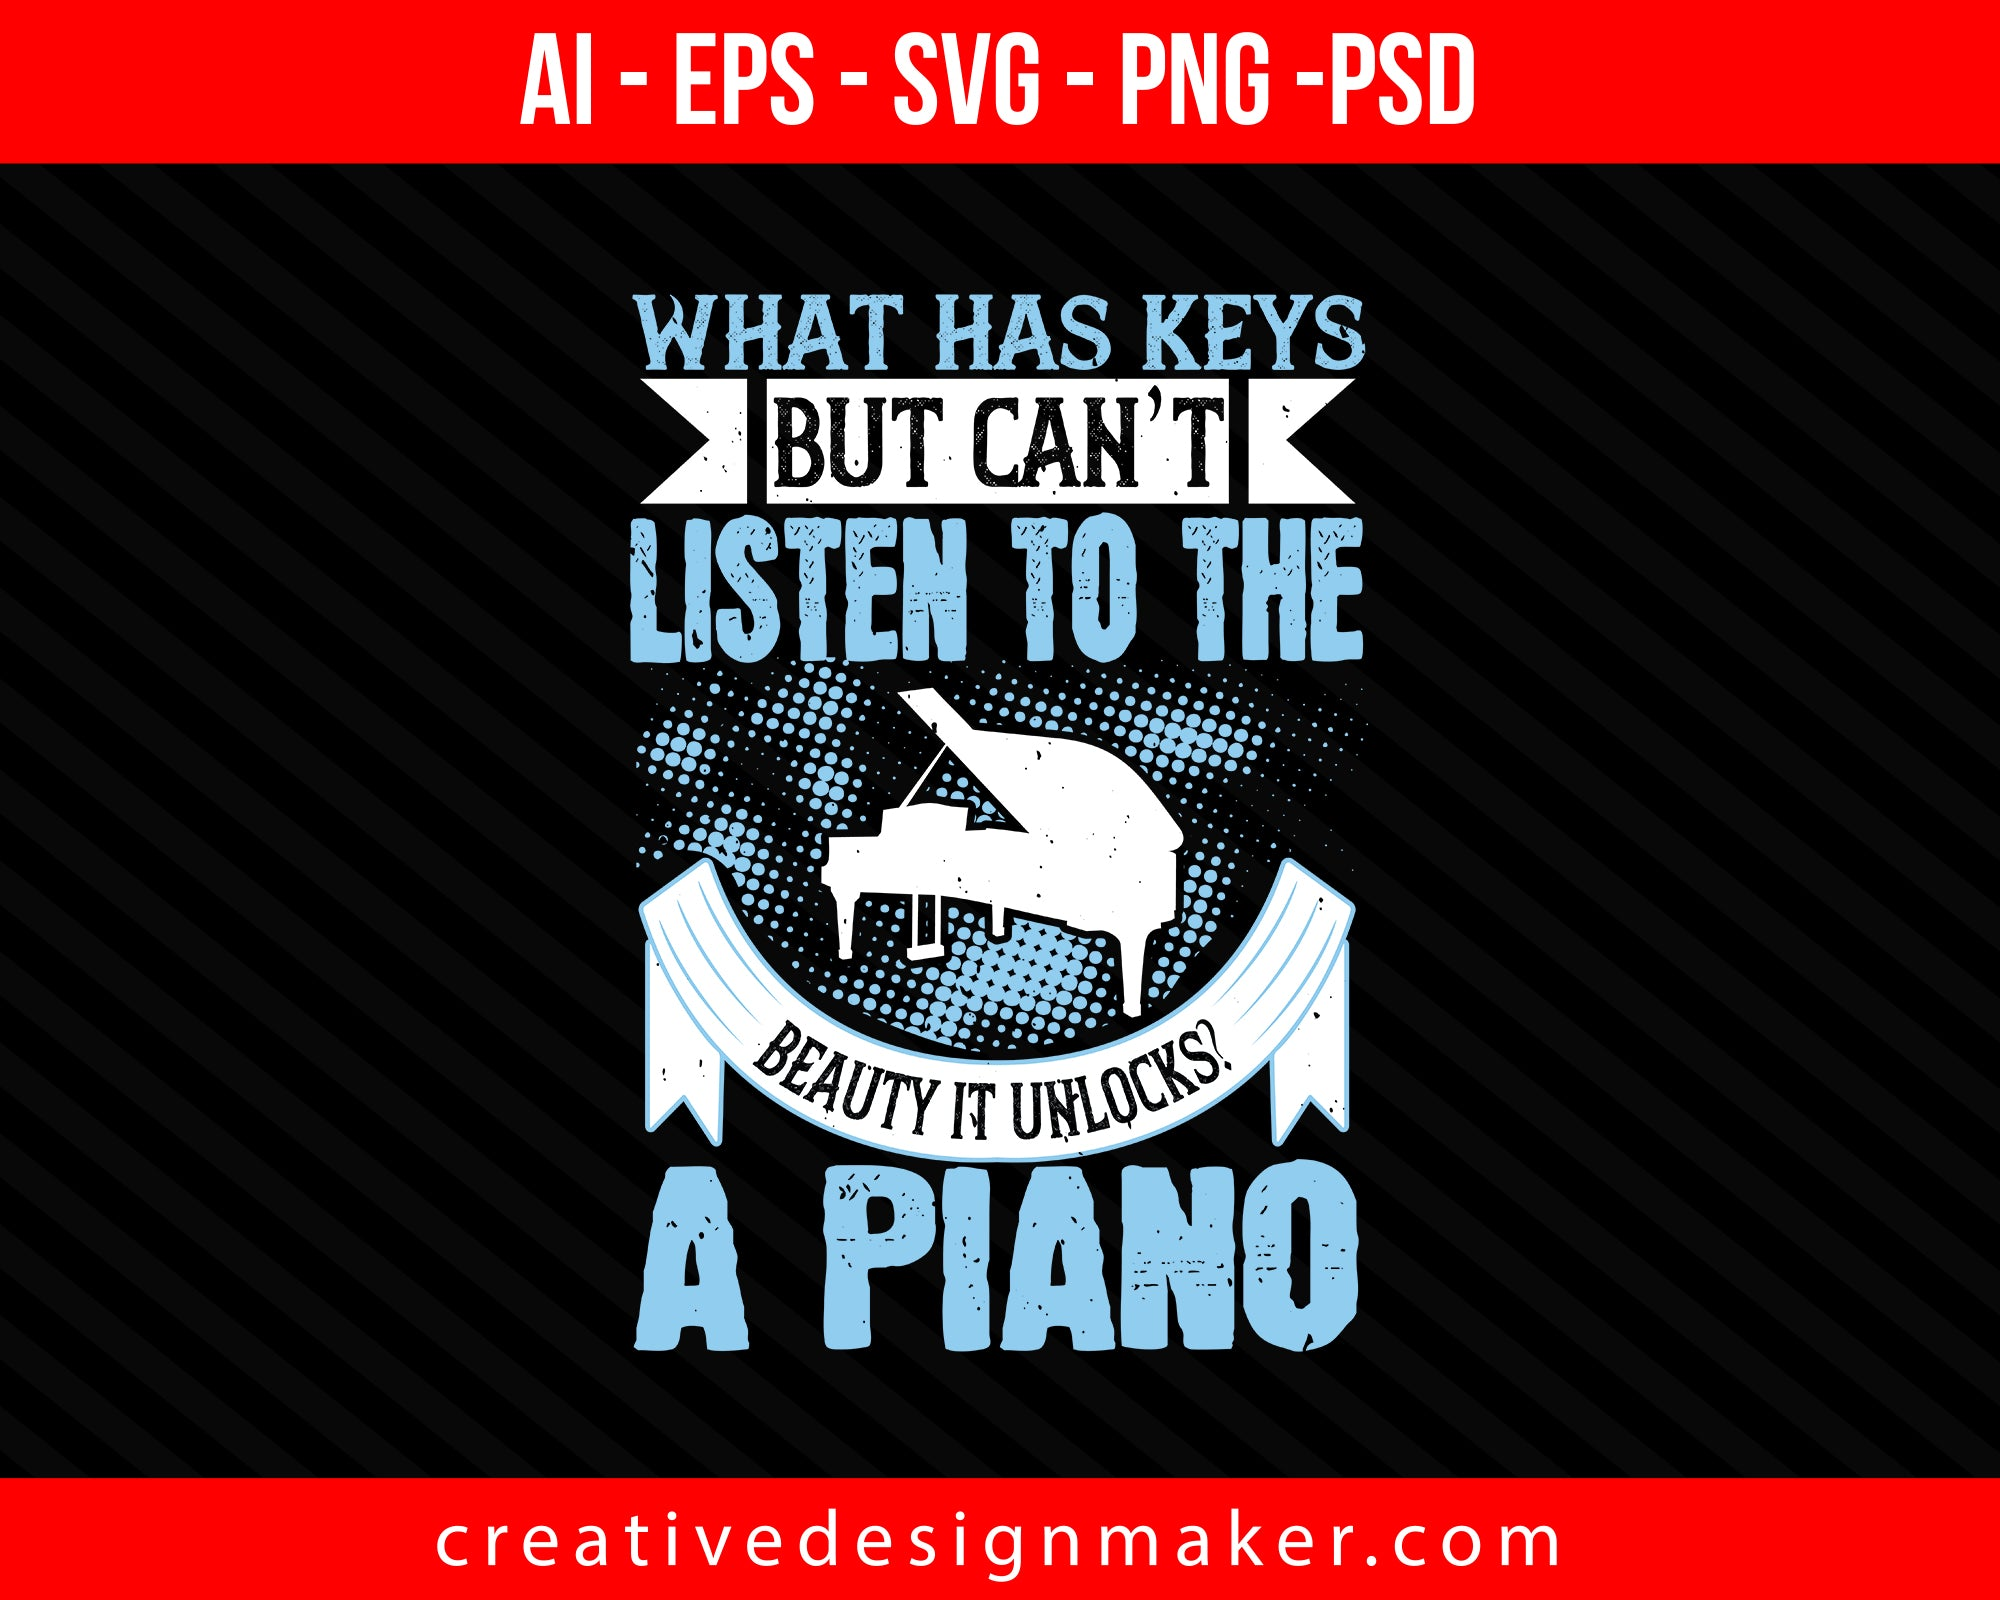 What has keys but can't listen to the beauty it unlocks A Piano Print Ready Editable T-Shirt SVG Design!